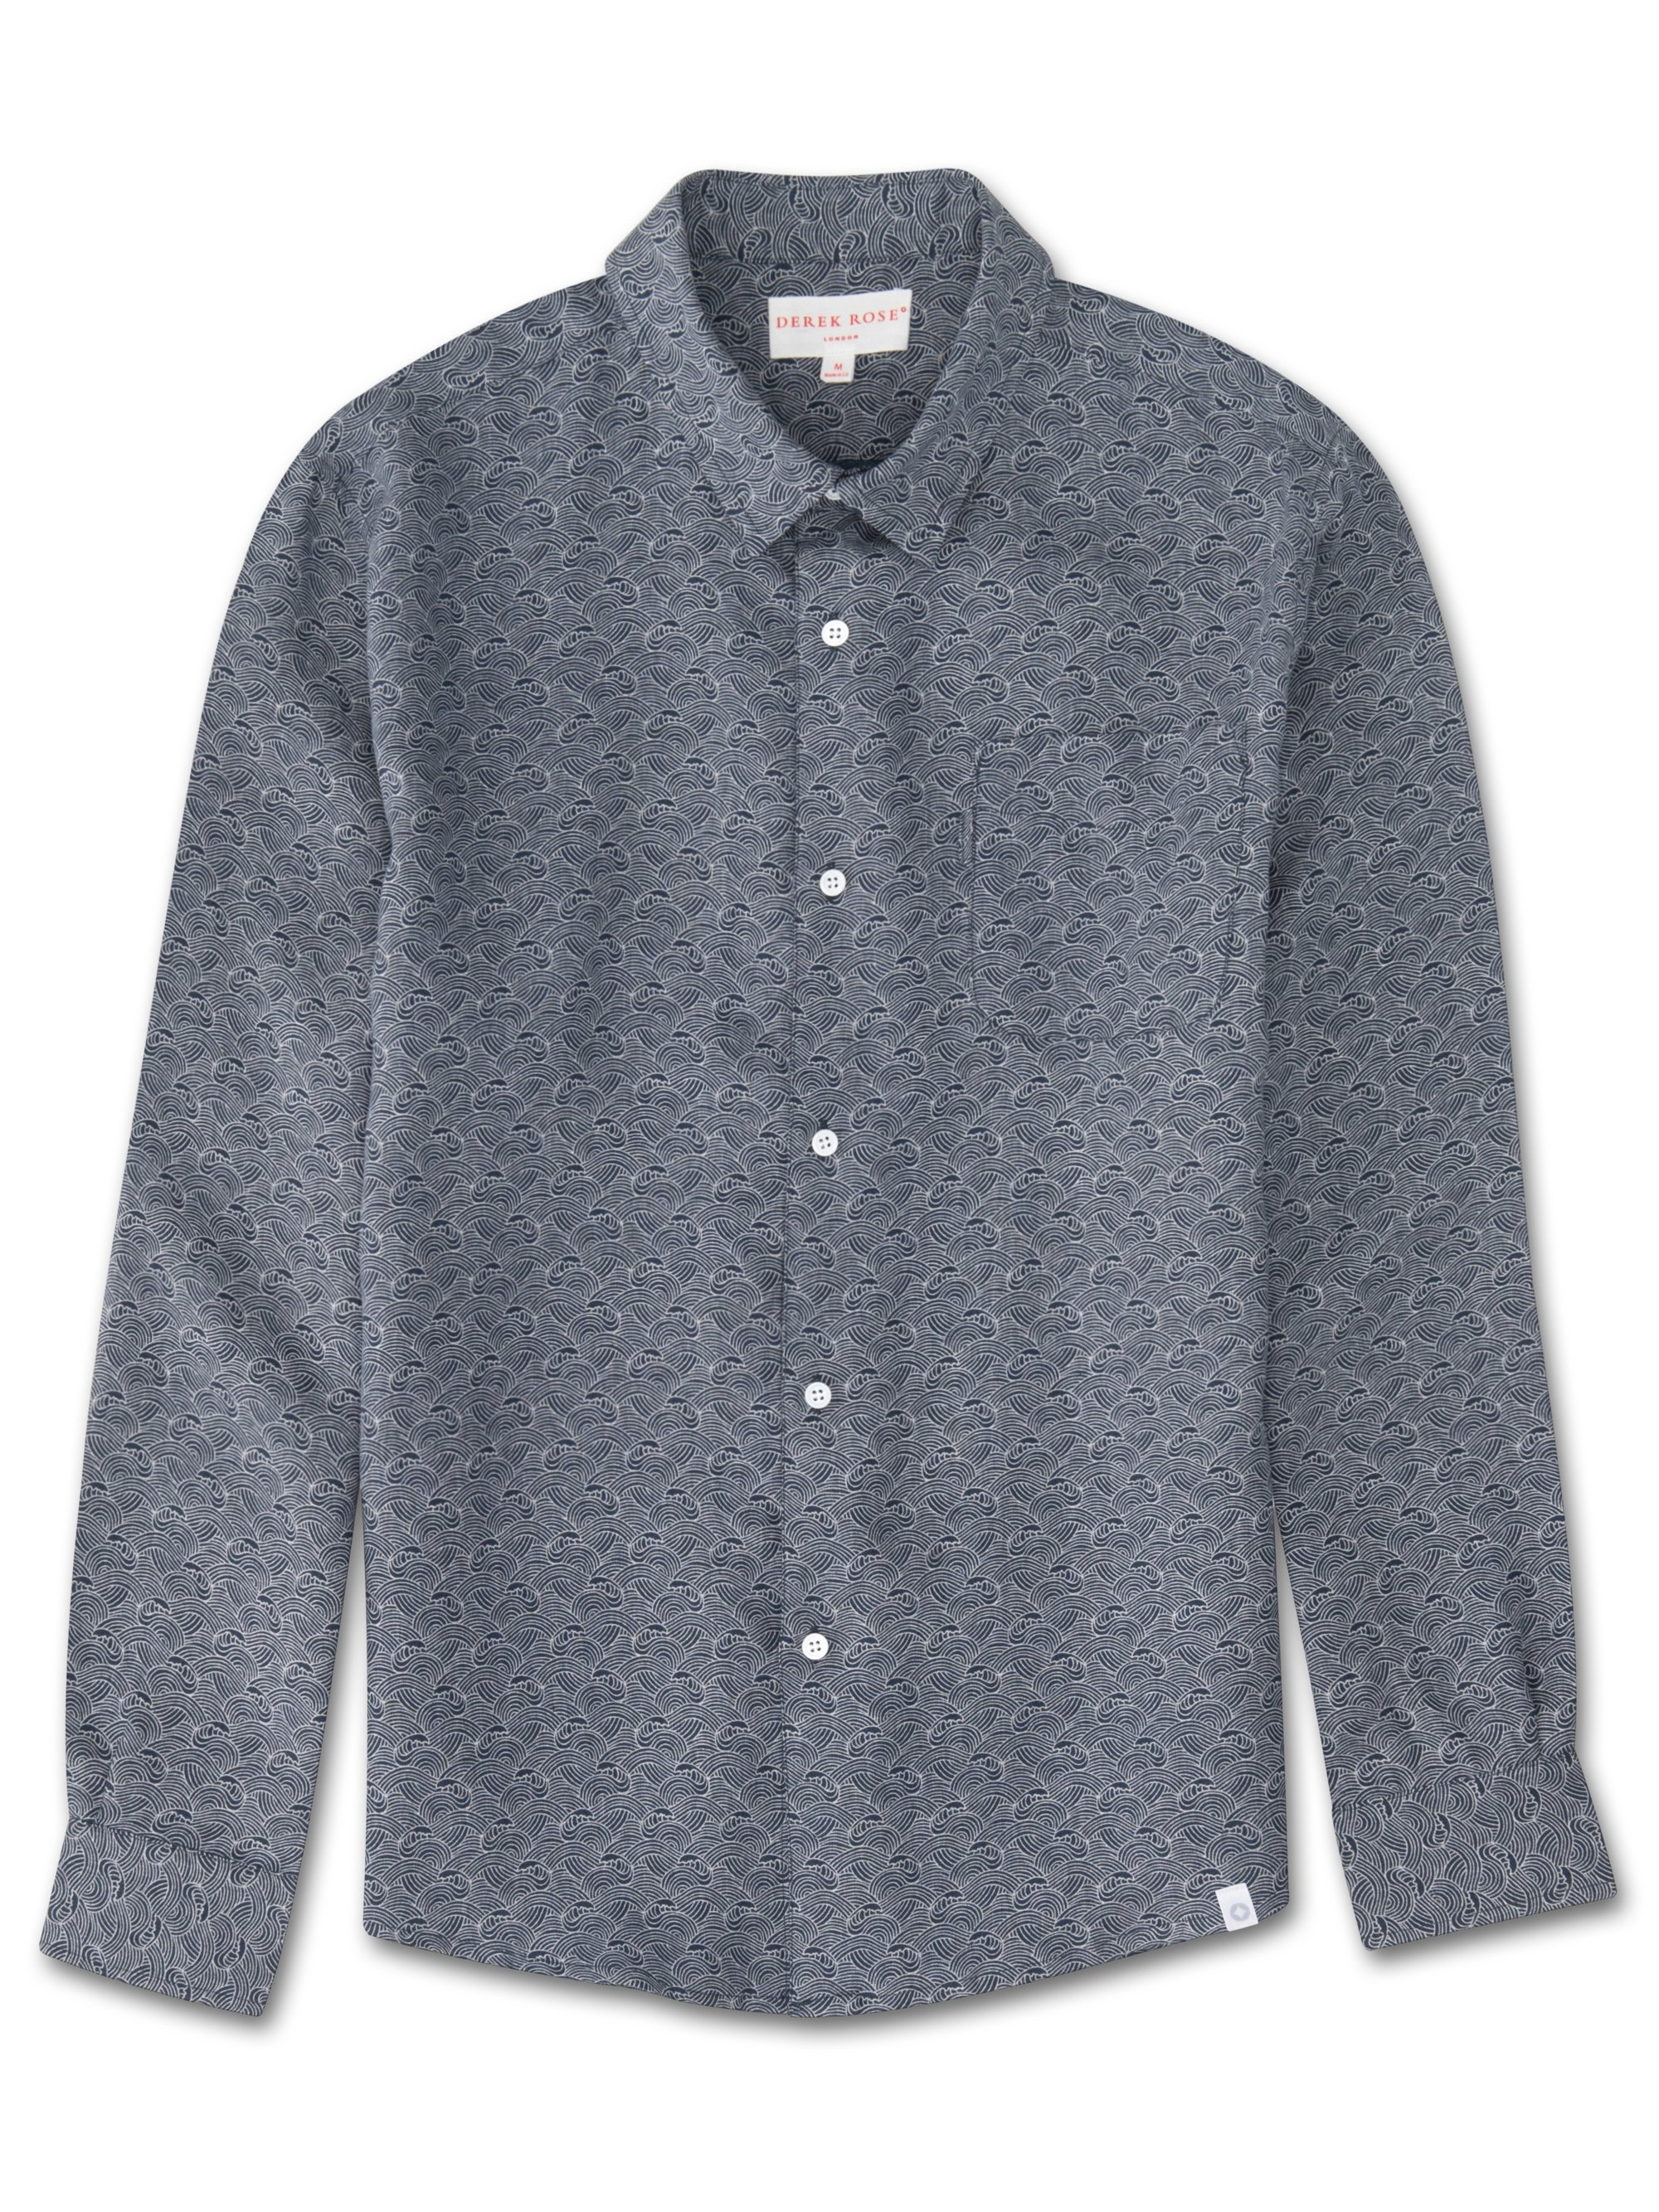 Men's Linen Shirt Milan 2 Linen Navy